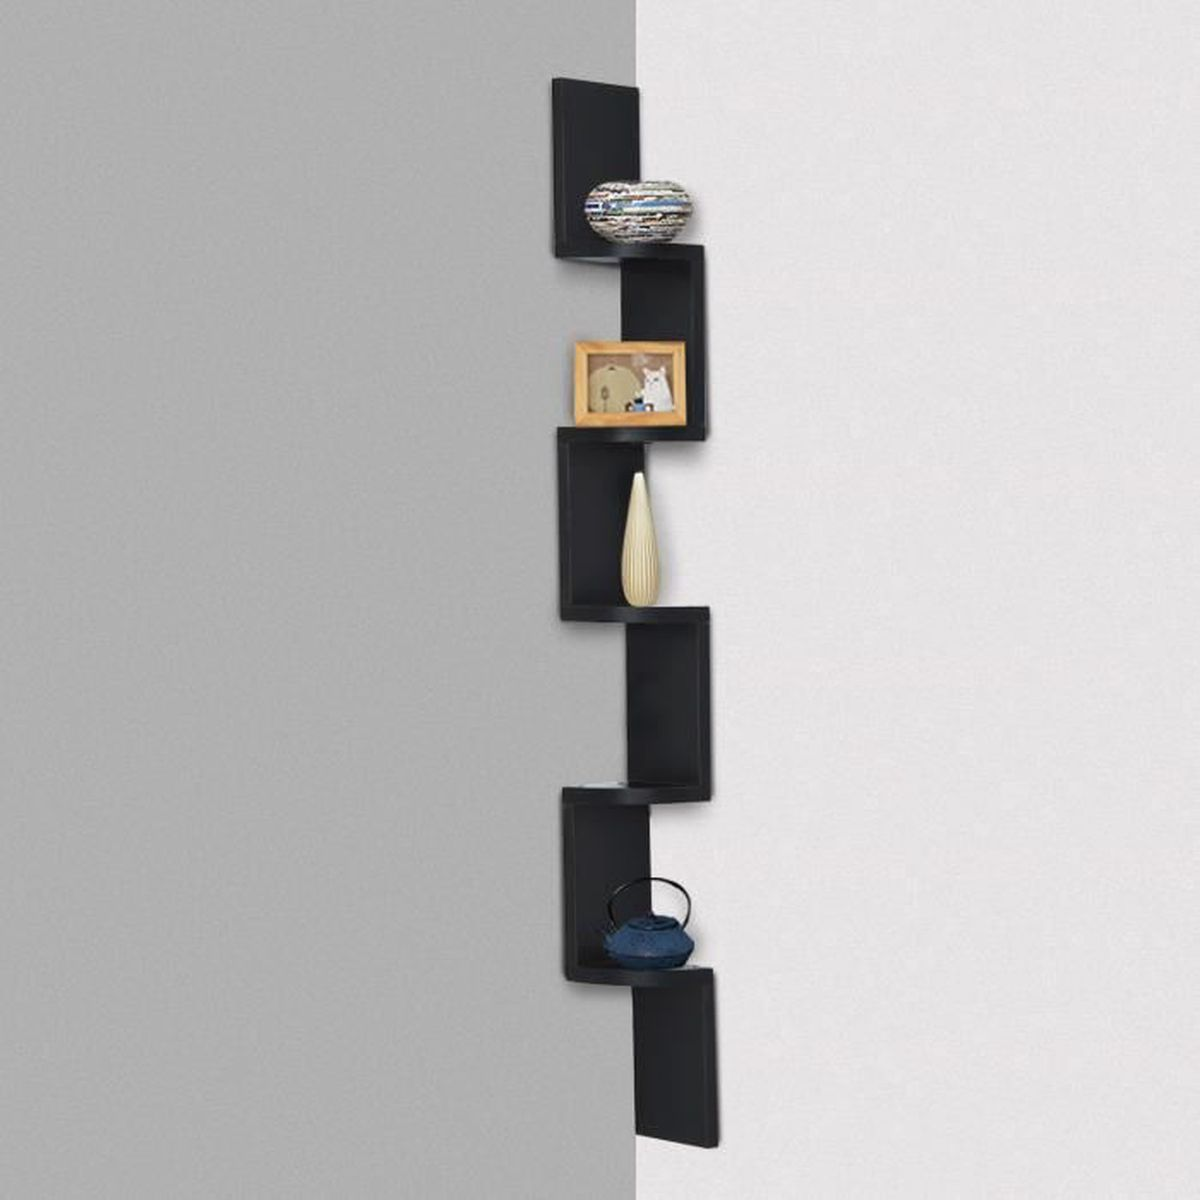 etagere murale d angle achat vente etagere murale d angle pas cher cdiscount. Black Bedroom Furniture Sets. Home Design Ideas